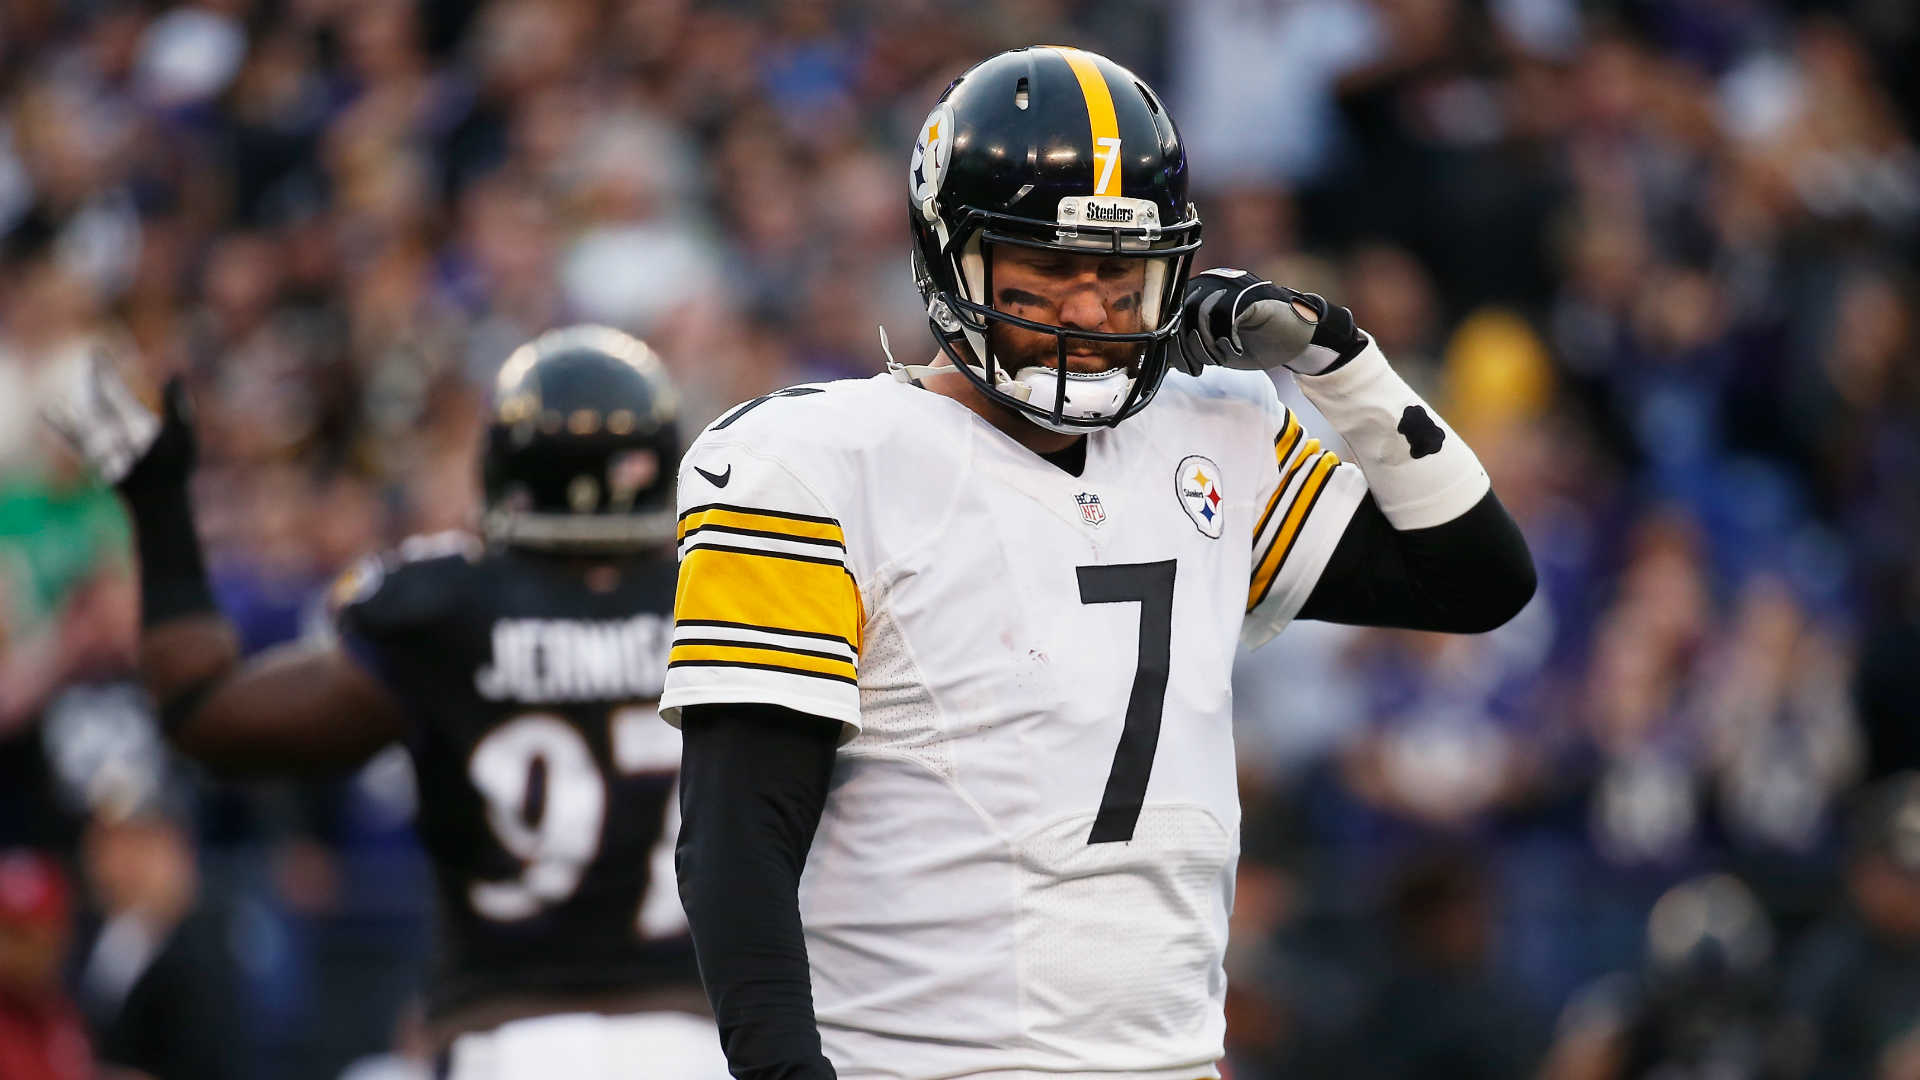 Ben-Roethlisberger-122715-Getty-FTR.jpg